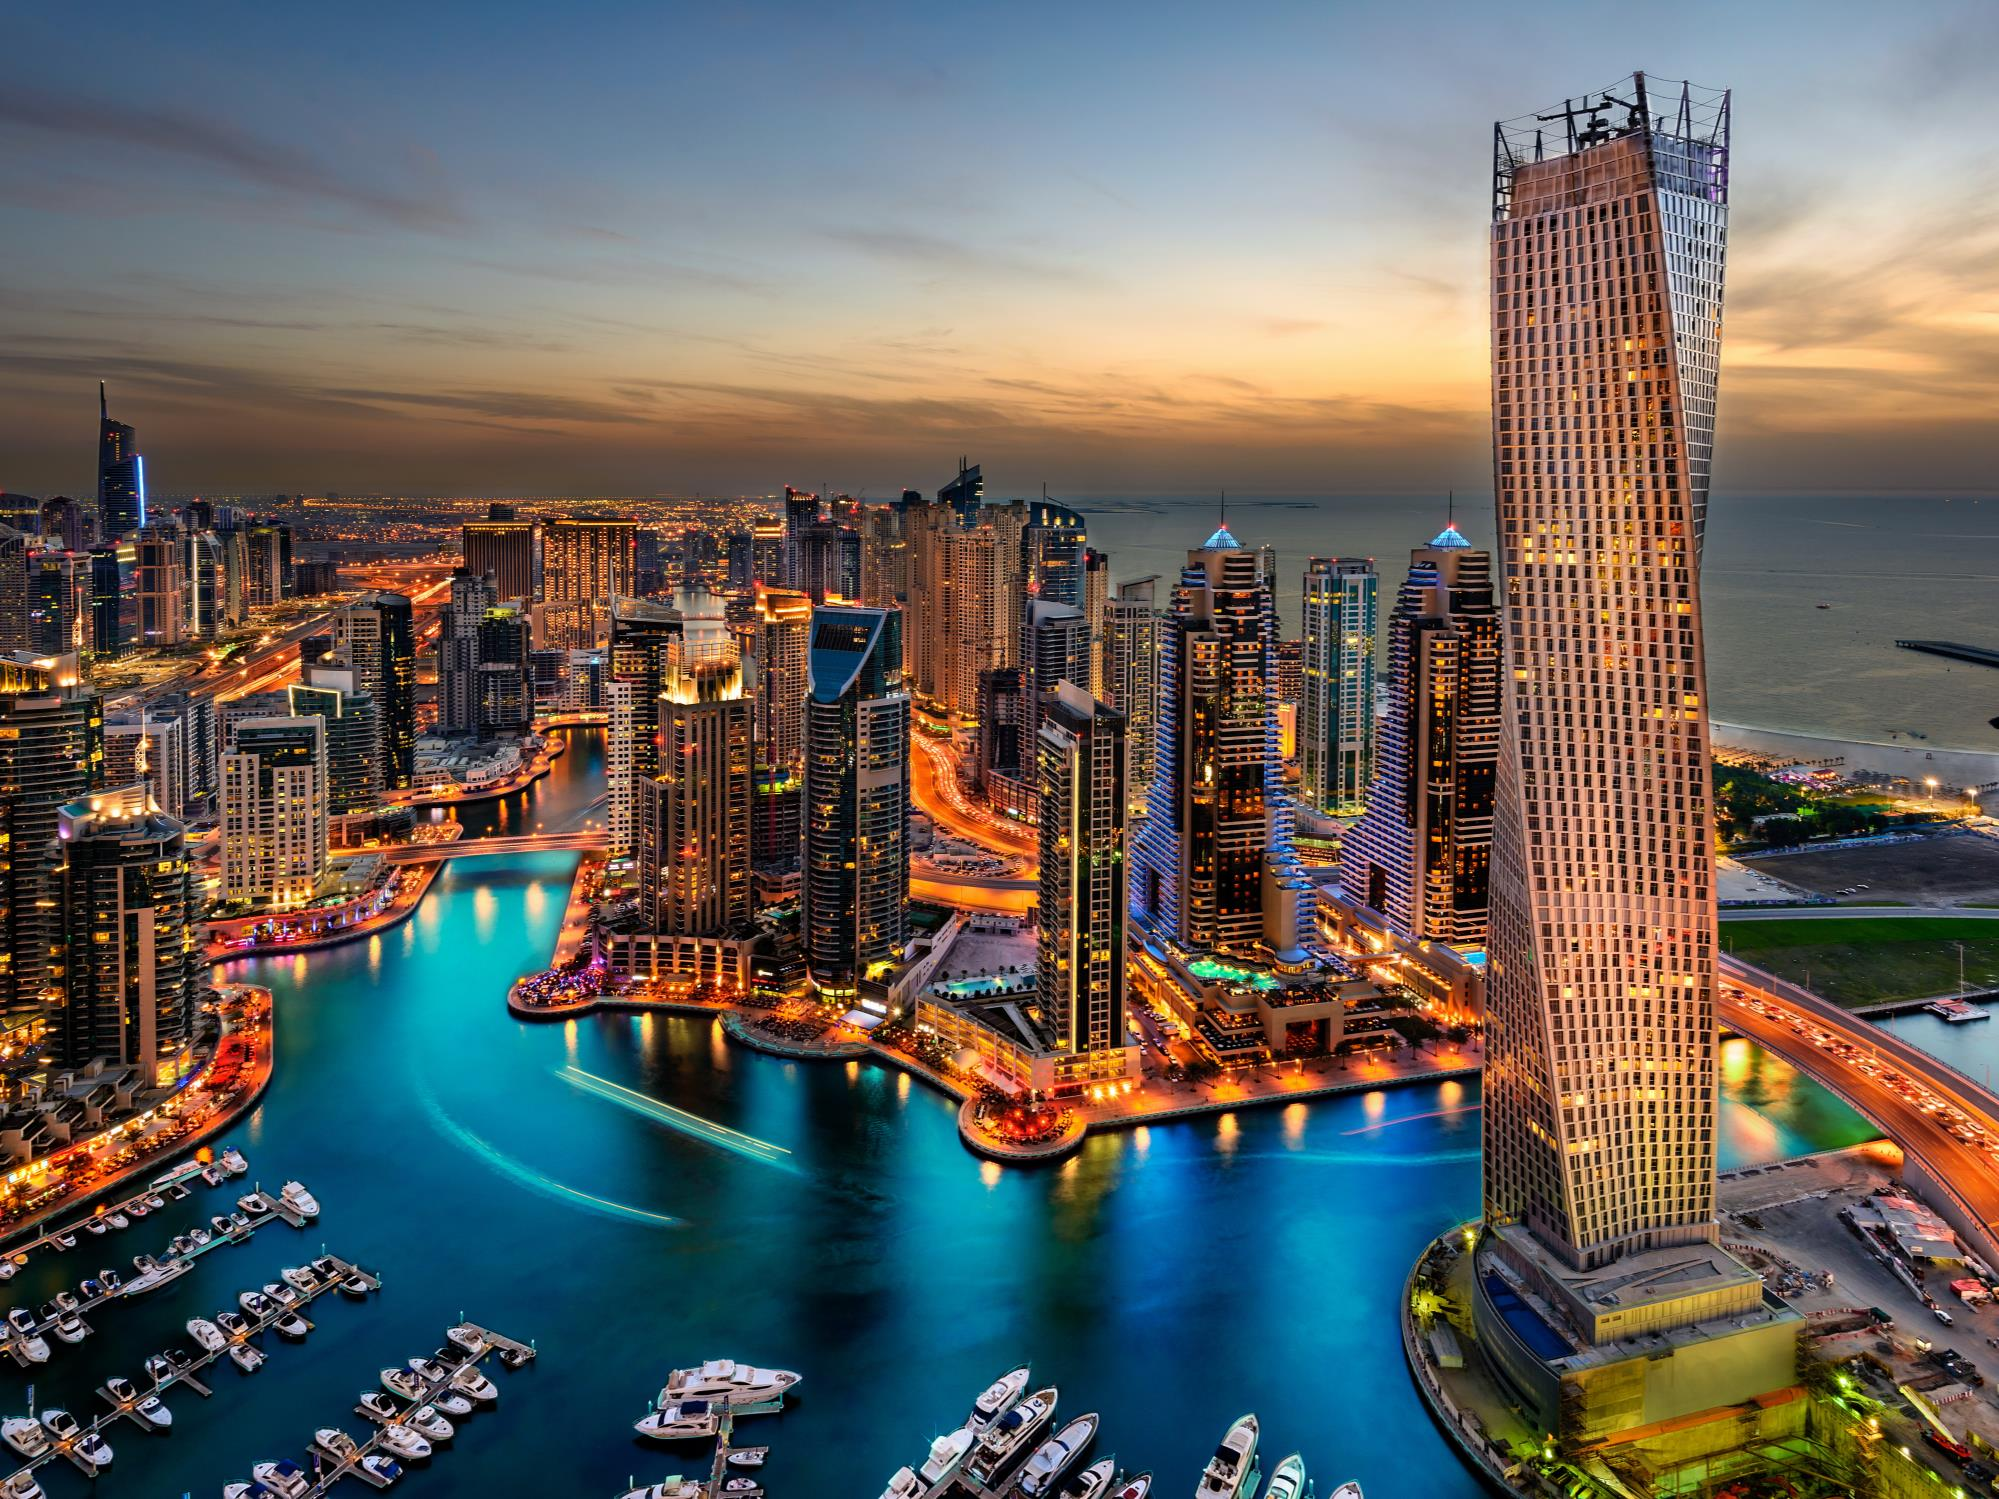 EMIRATI ARABI UNITI (UAE) COUNTRY OVERVIEW Focus Retail